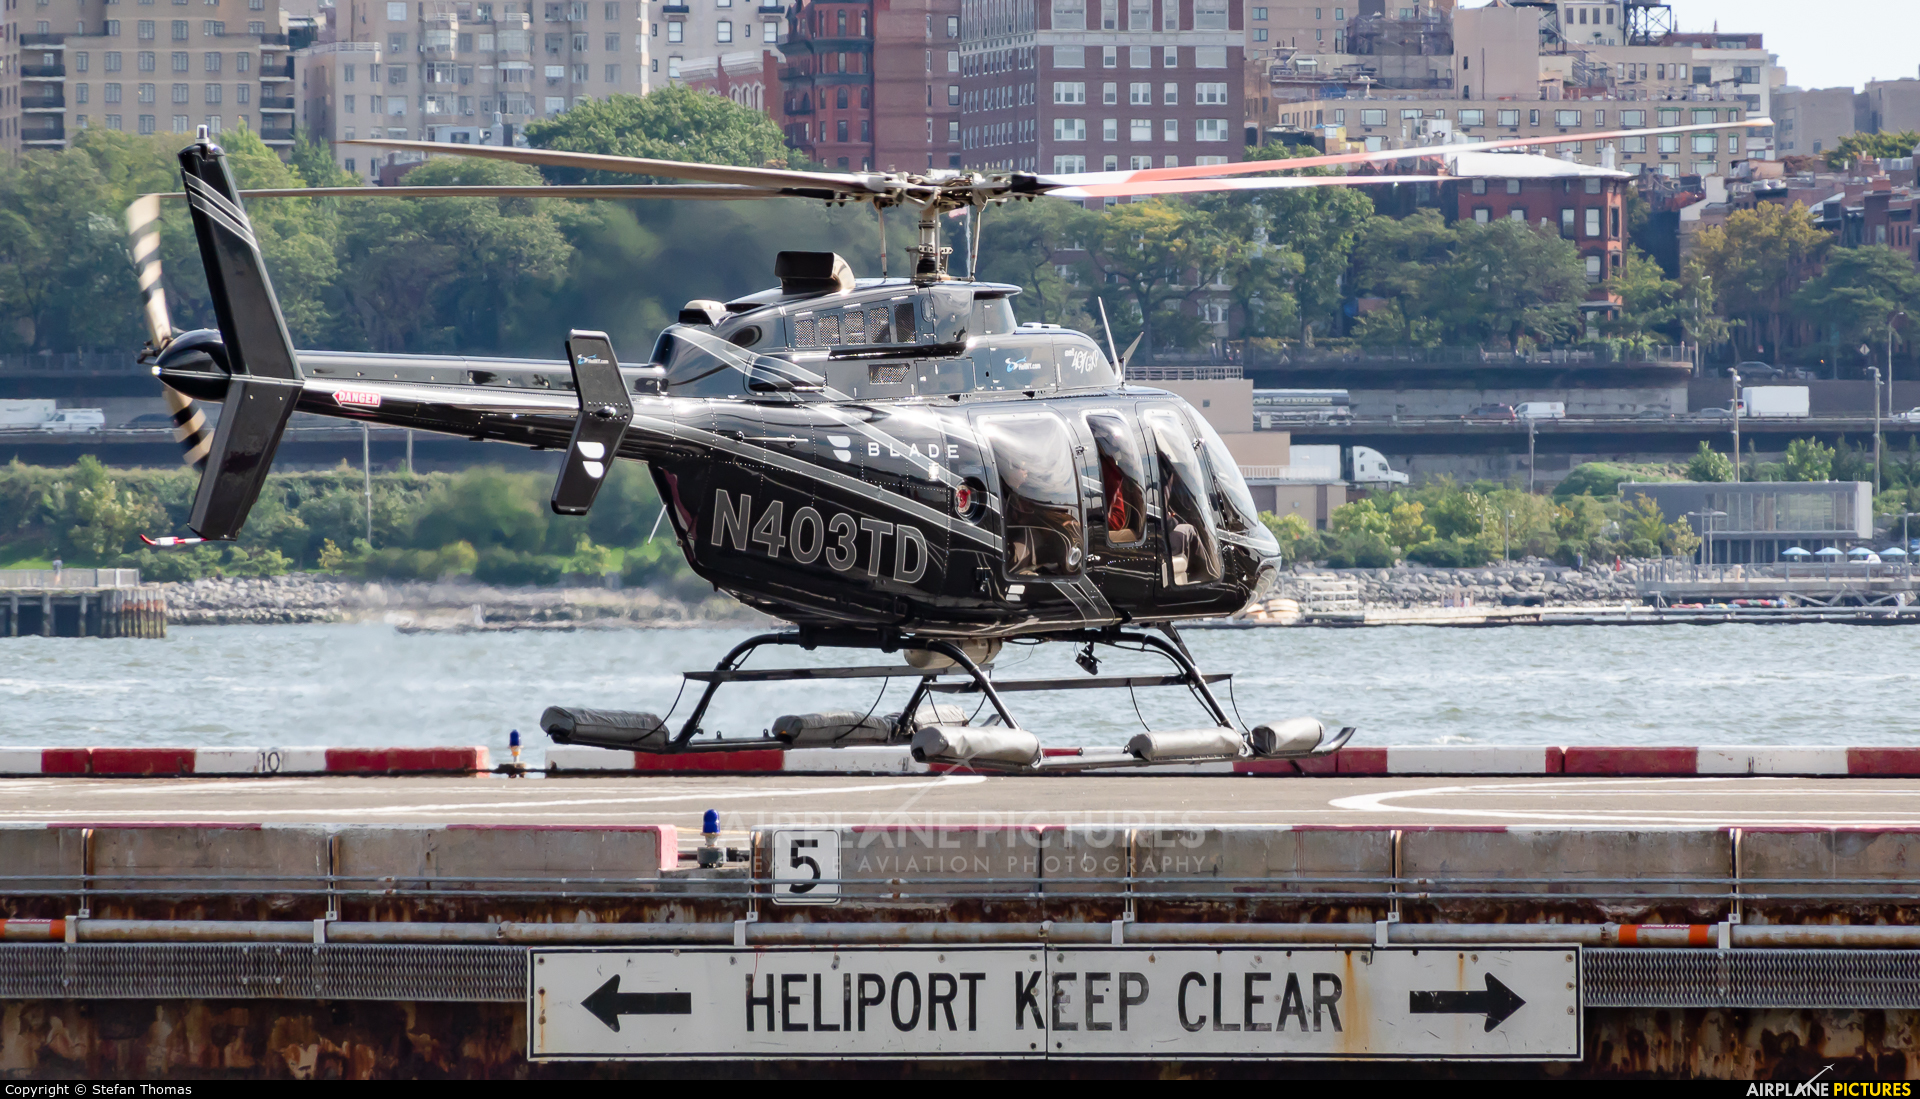 Helicopter Services N403TD aircraft at Downtown Manhattan Heliport